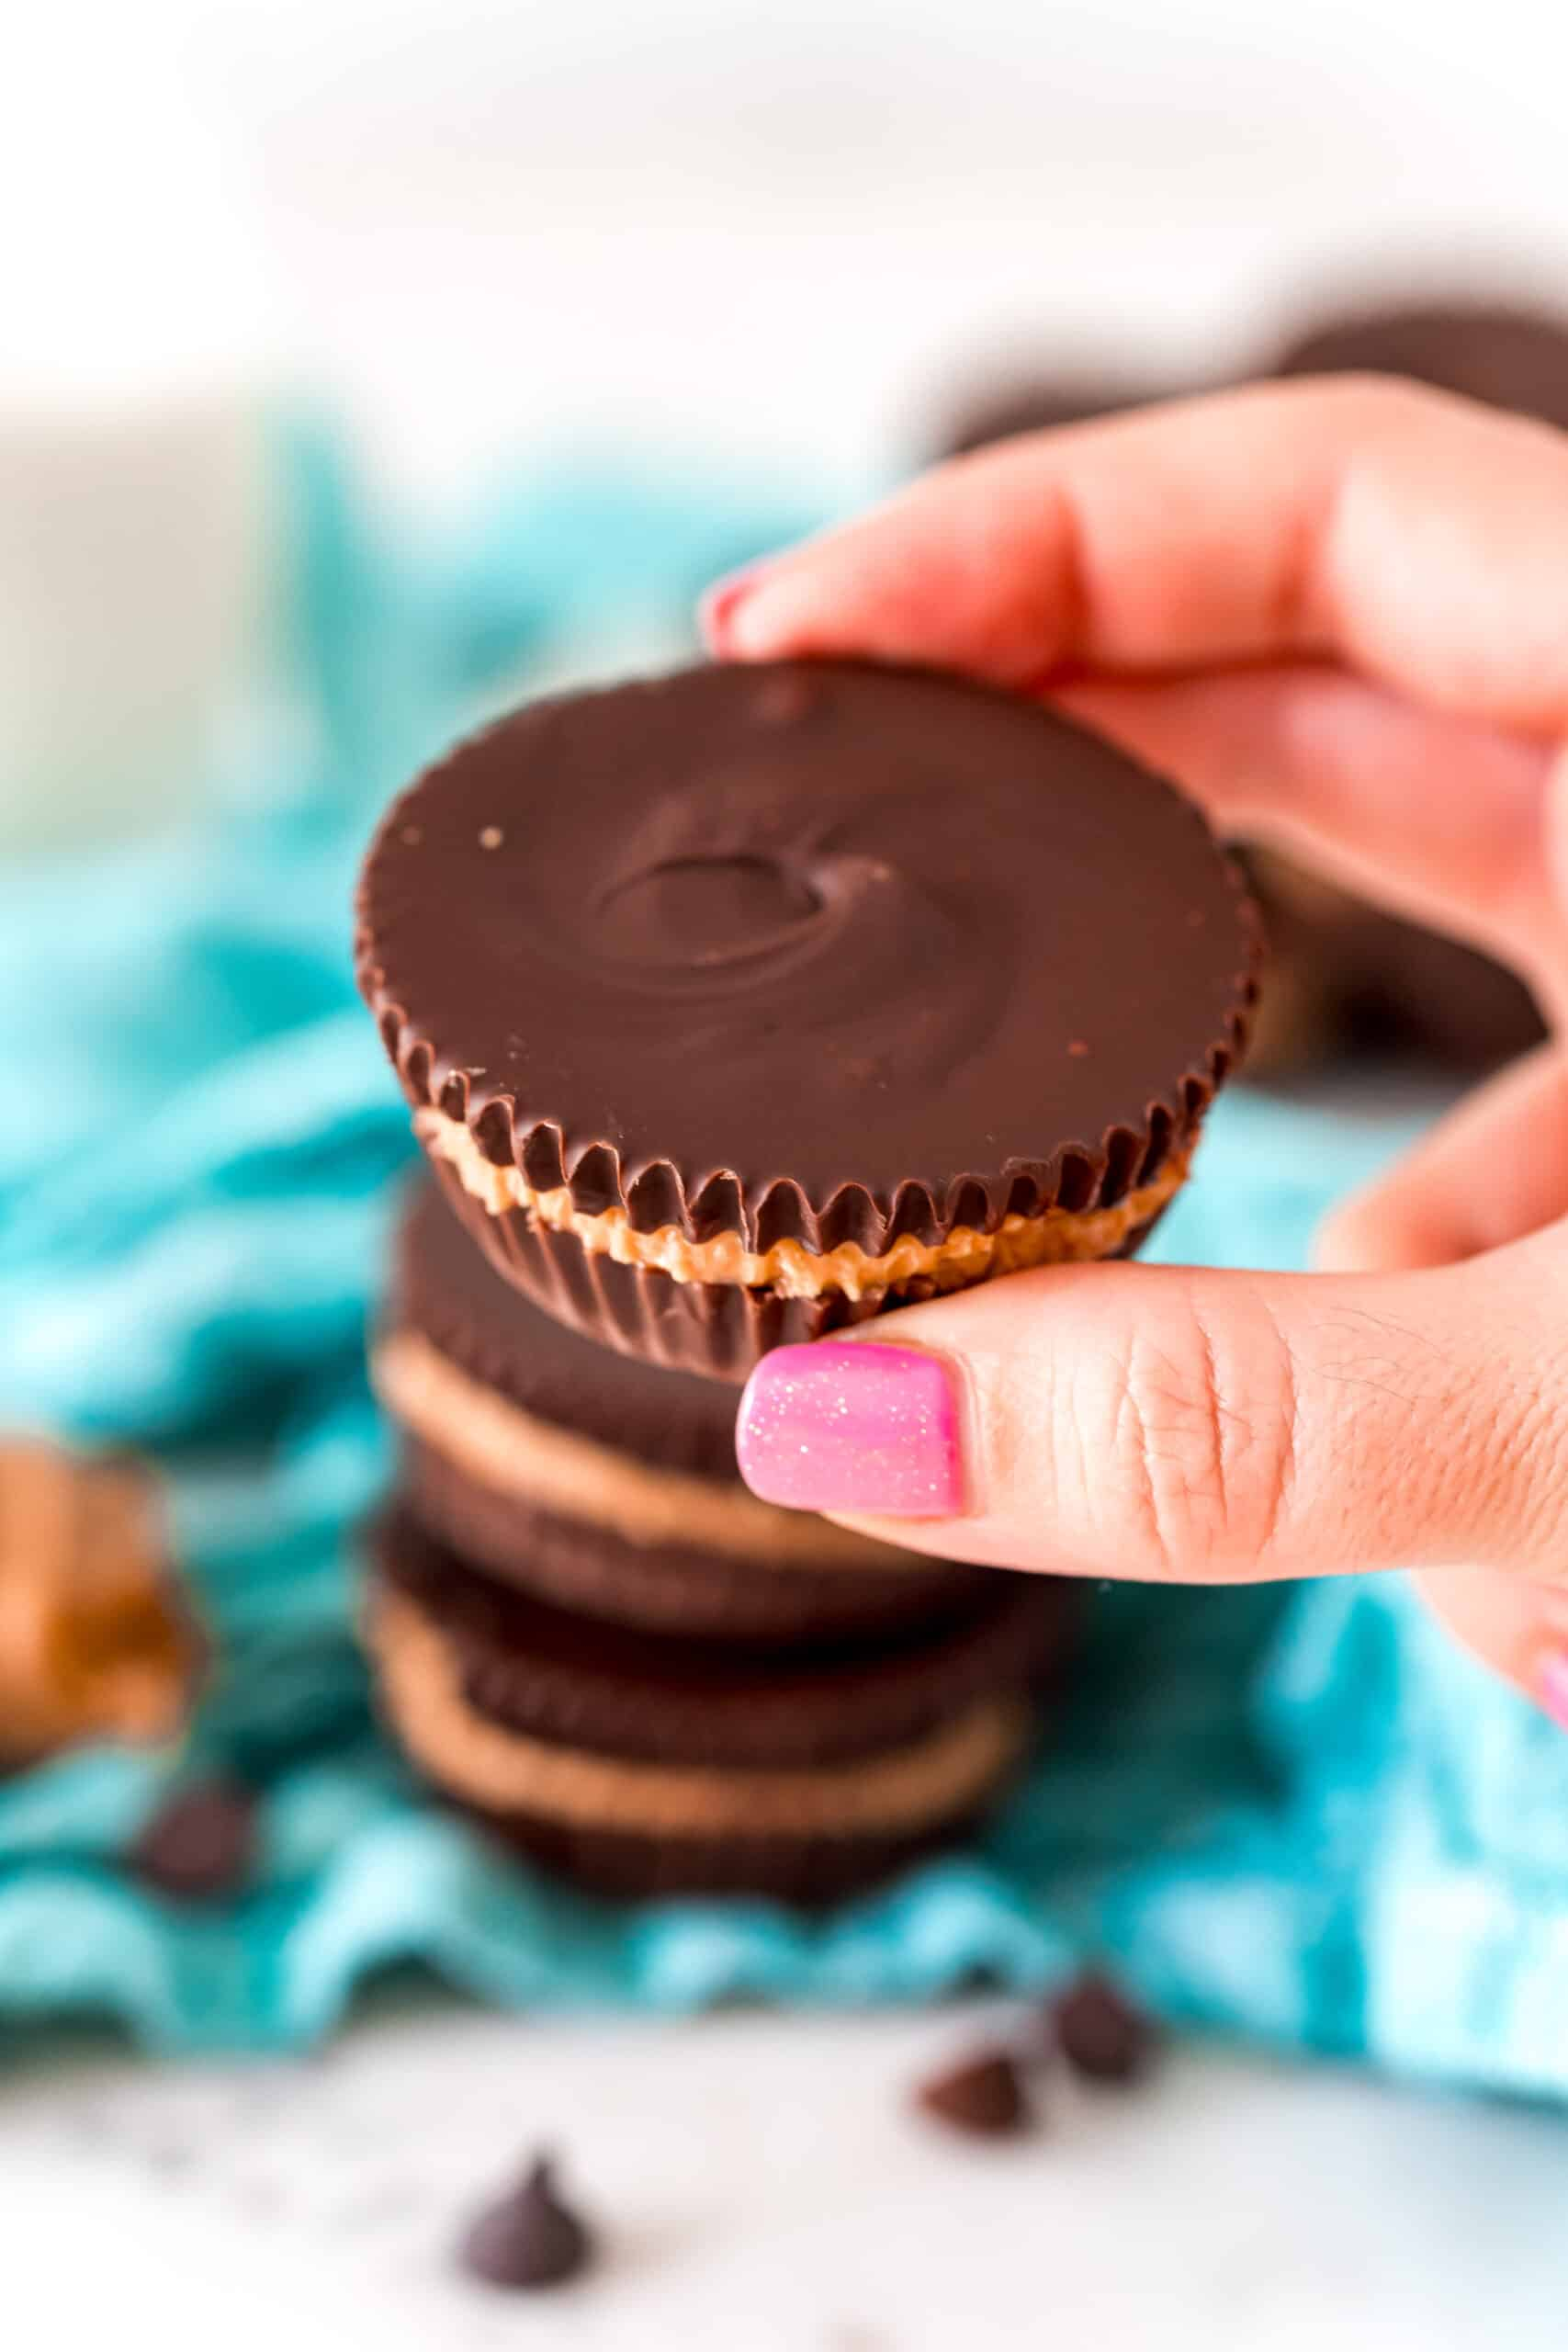 Homemade peanut butter cup being held.